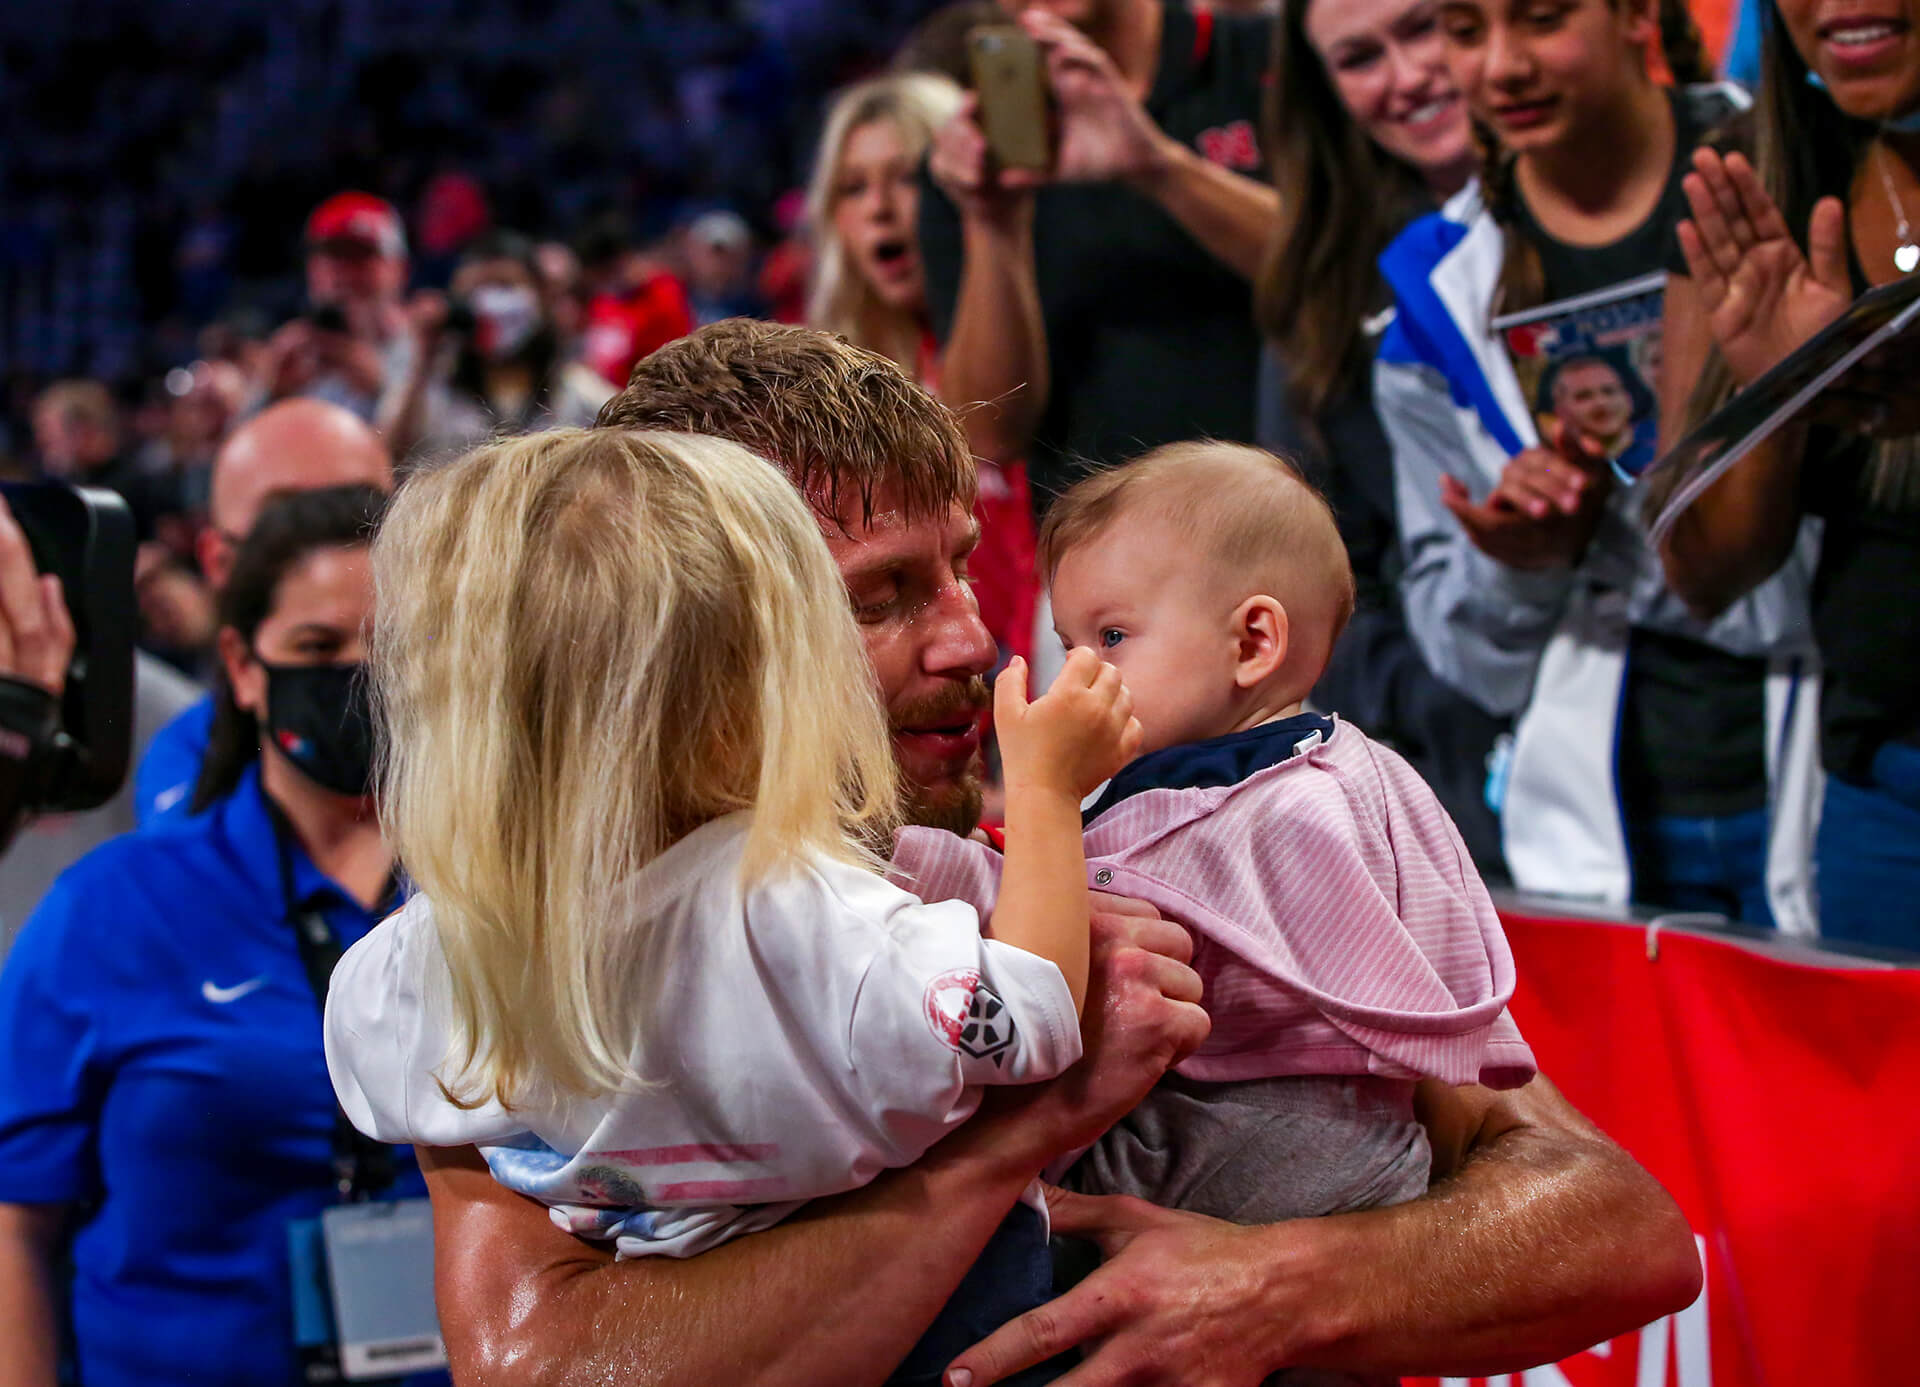 Kyle holding his two daughters